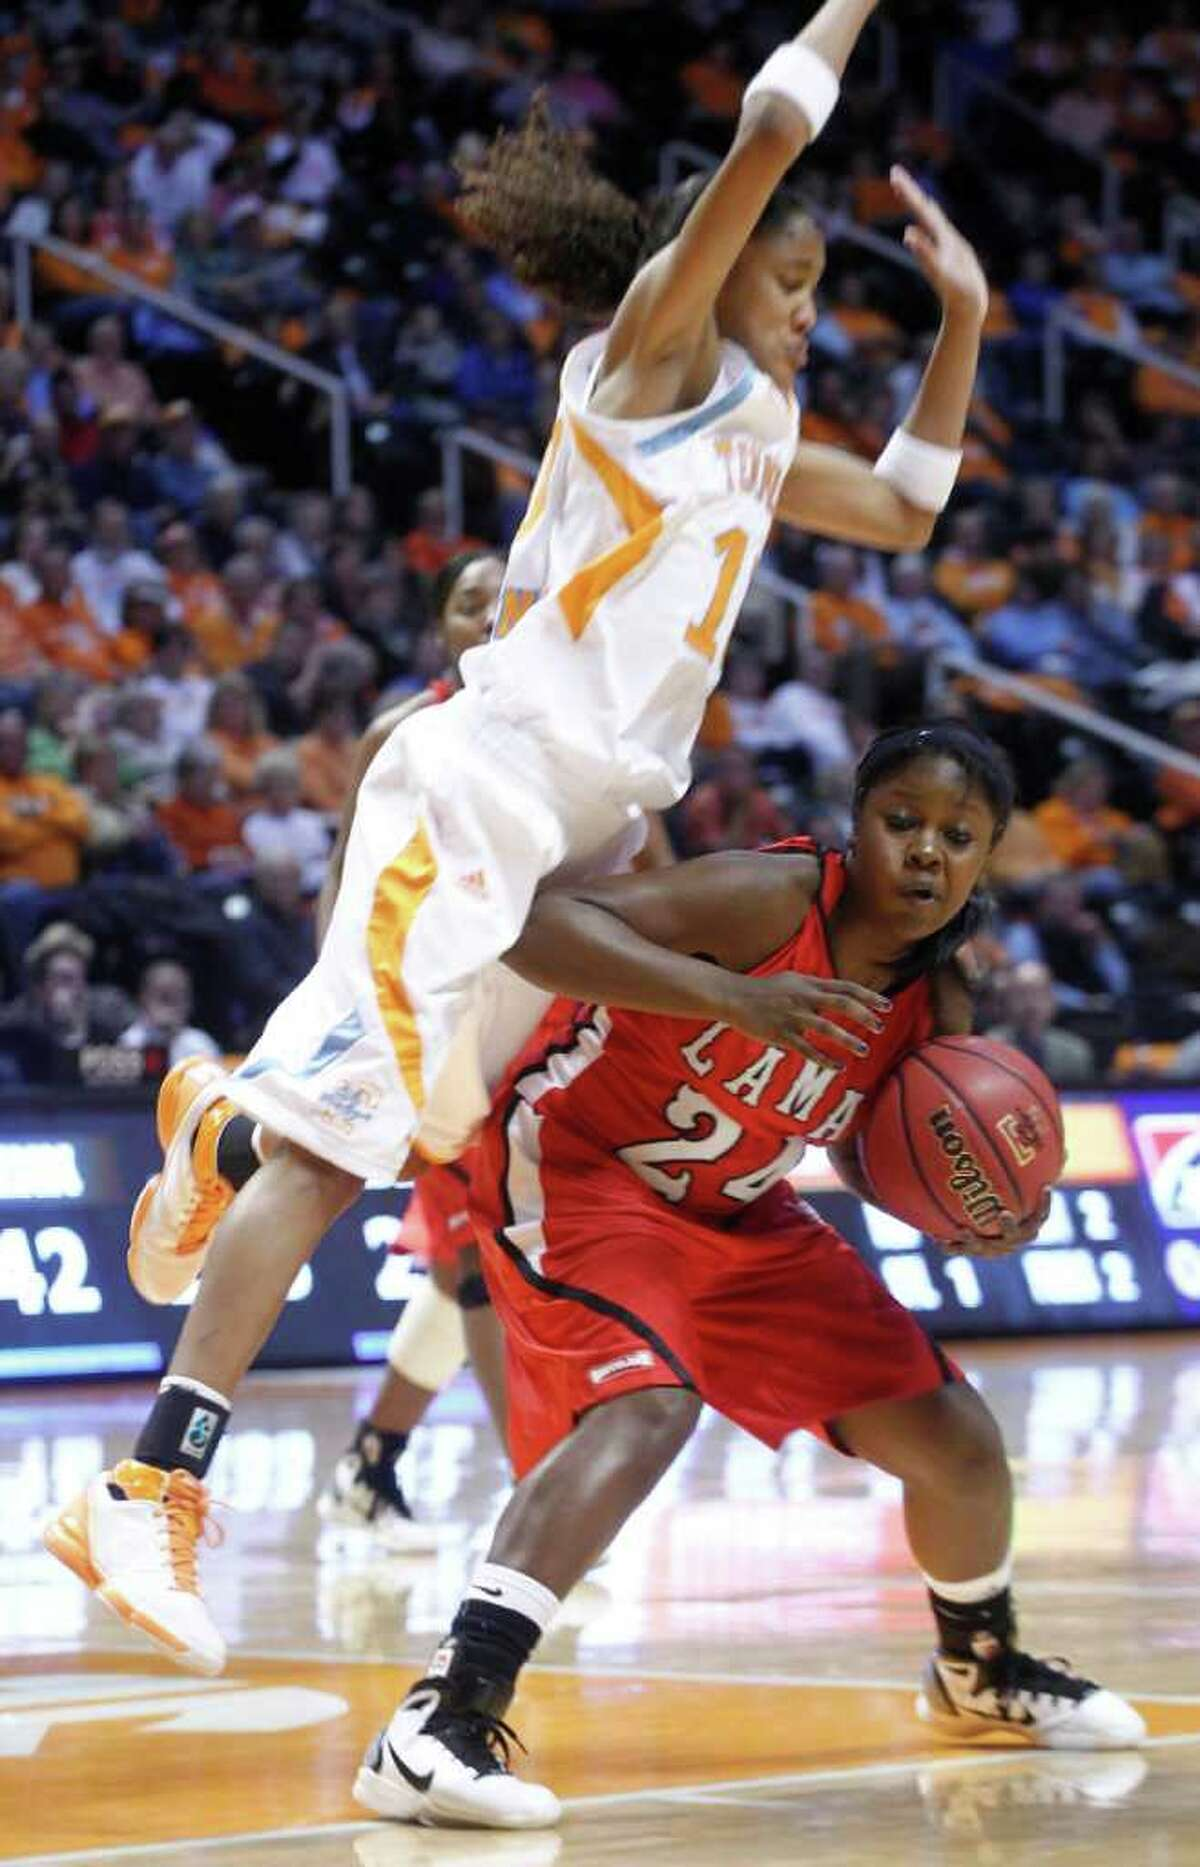 Tennessee's Meighan Simmons, left, falls over Lamar's Ang Green (24) during the first half of an NCAA college basketball game Wednesday, Dec. 1, 2010, in Knoxville, Tenn. (AP Photo/Wade Payne)